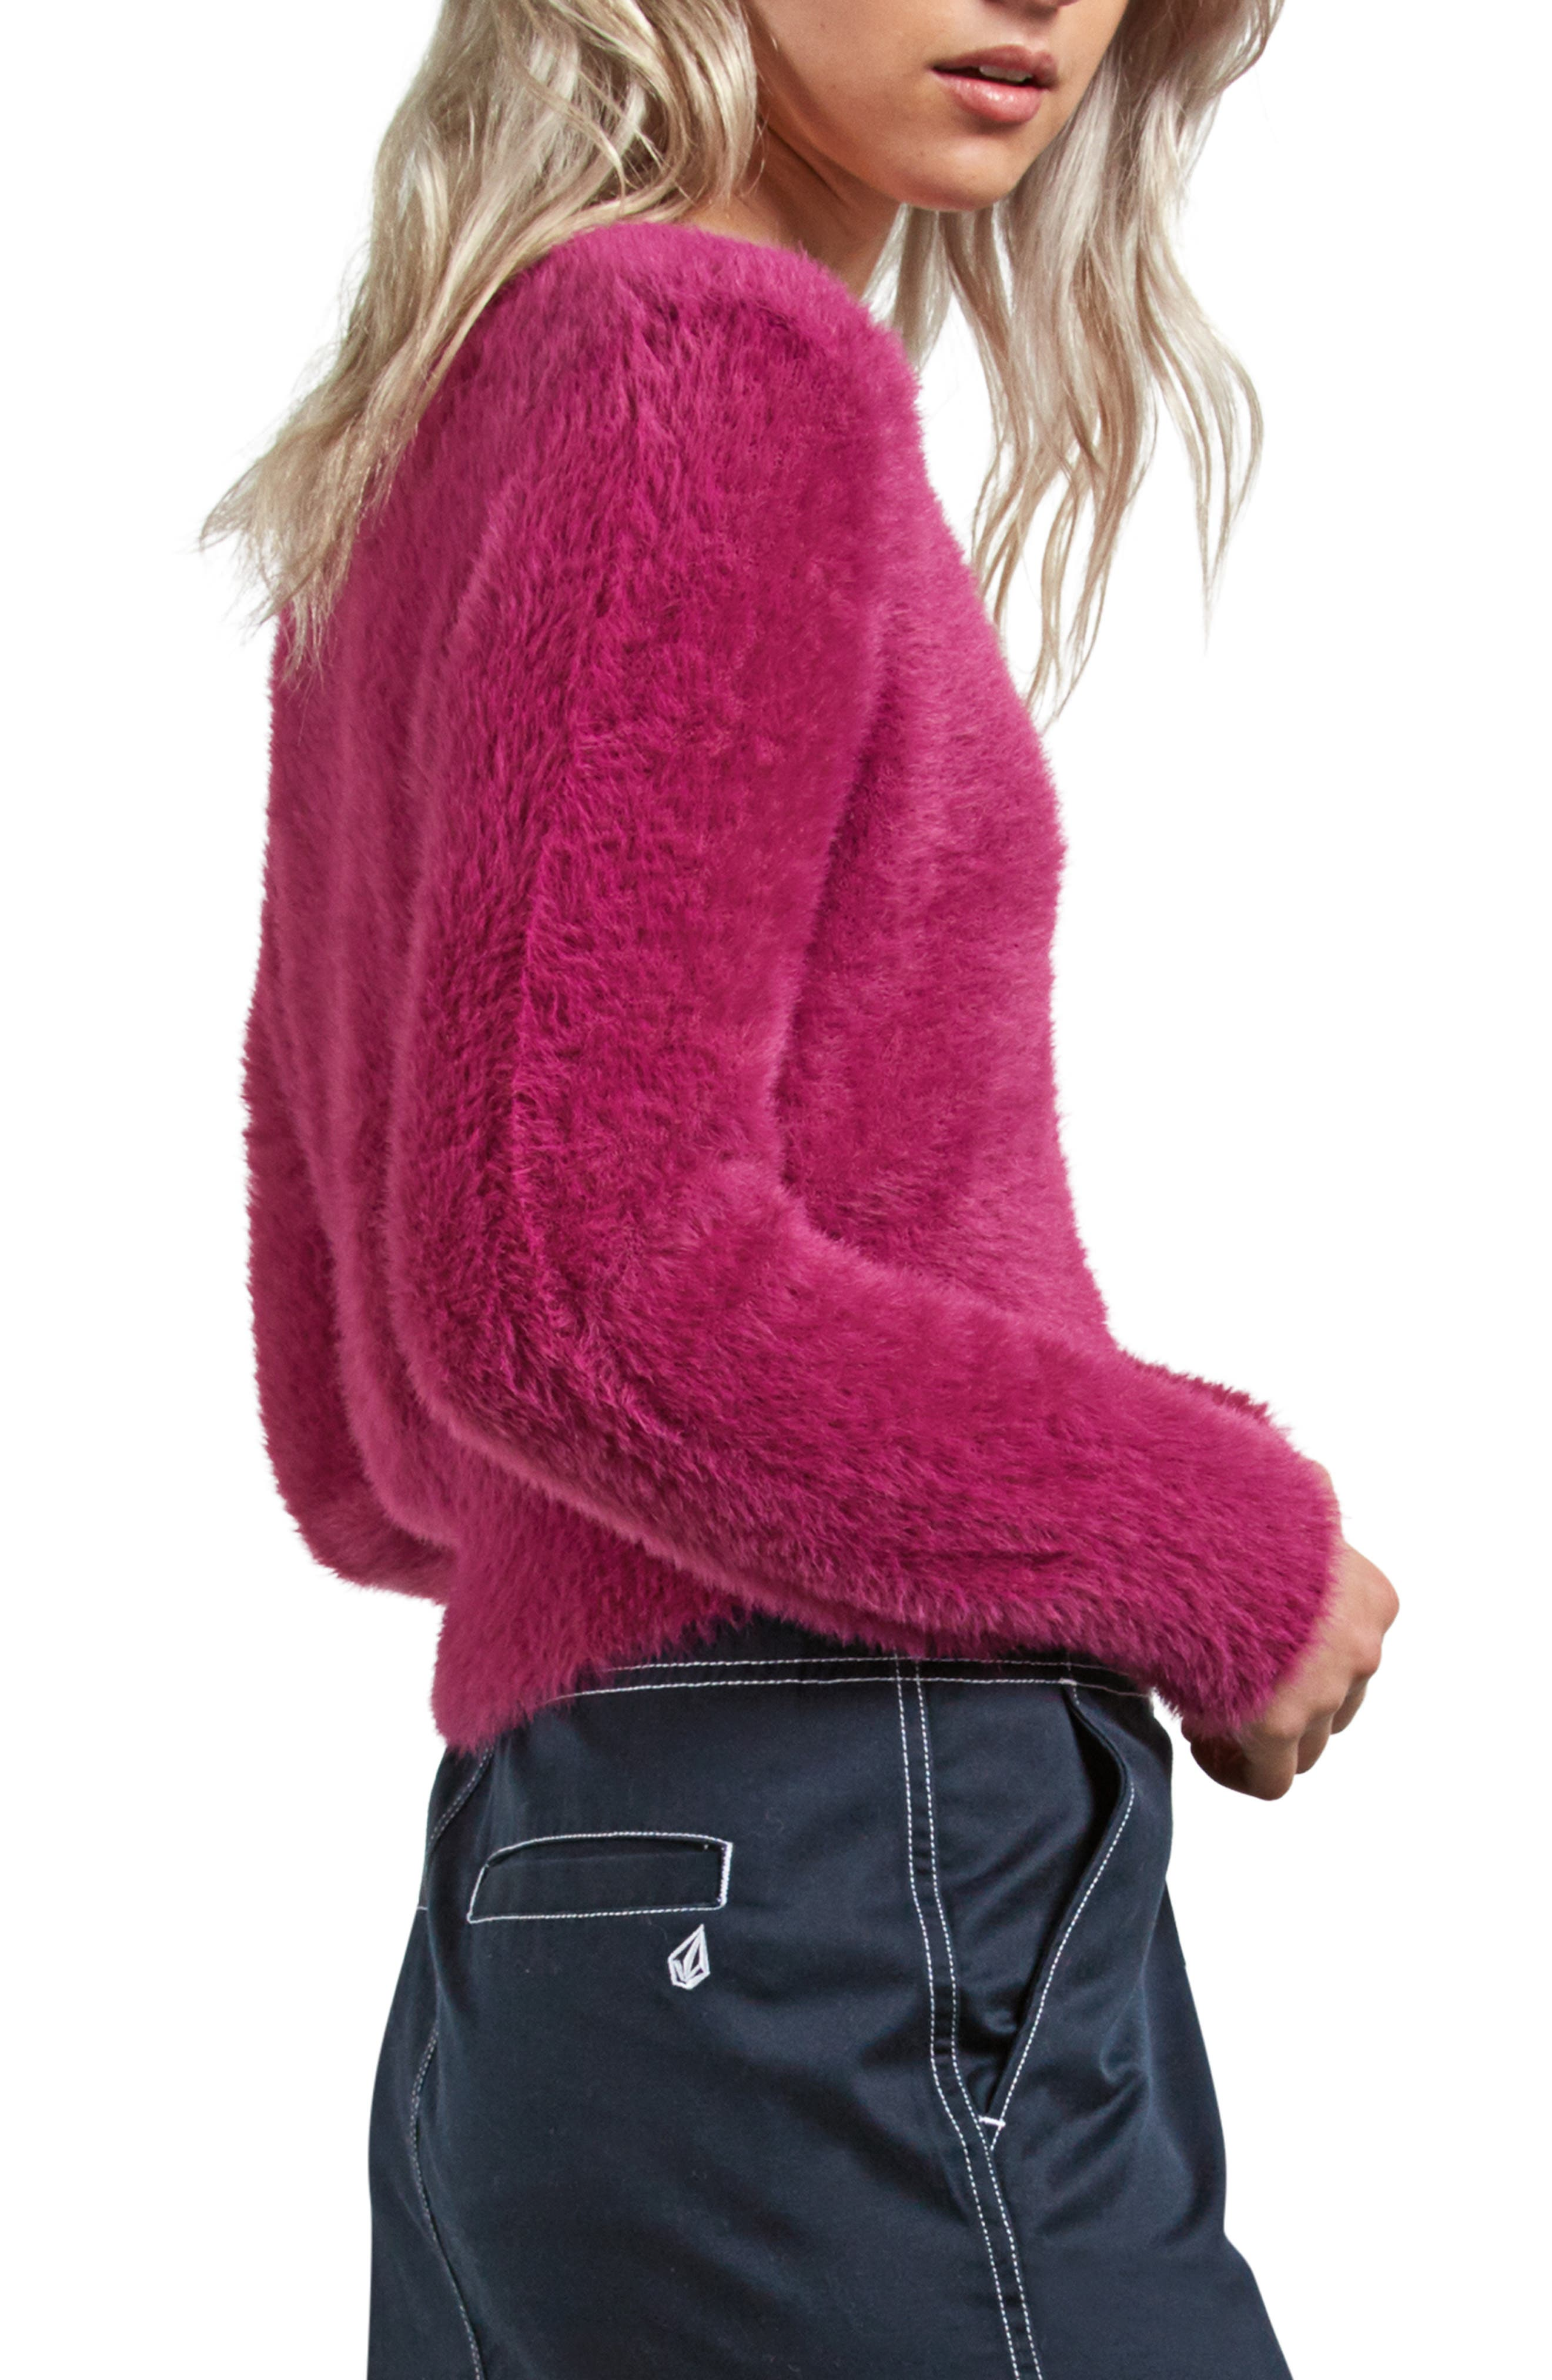 Clued 2 You Sweater,                             Alternate thumbnail 3, color,                             500